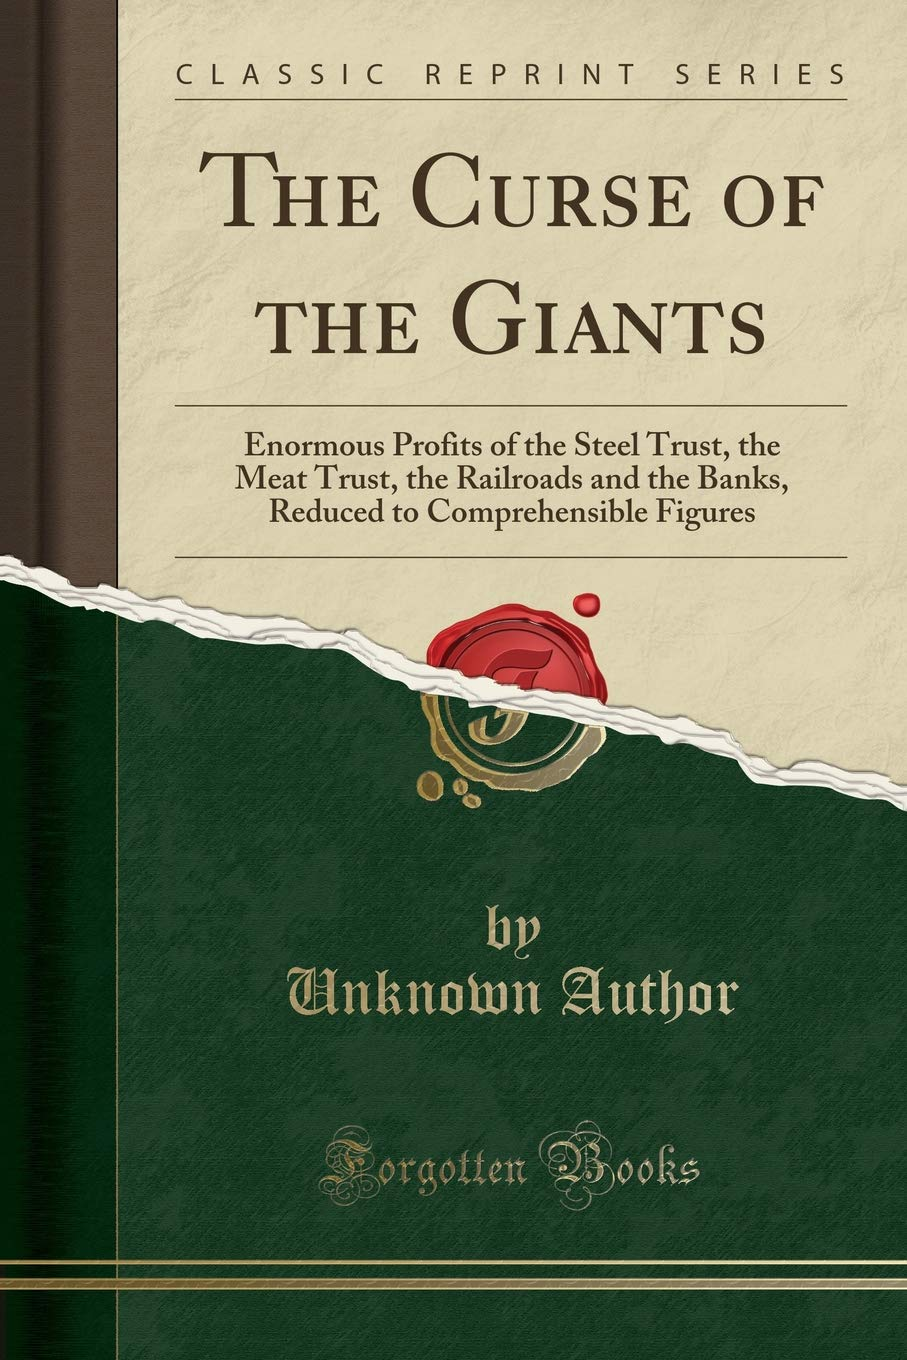 Download The Curse of the Giants: Enormous Profits of the Steel Trust, the Meat Trust, the Railroads and the Banks, Reduced to Comprehensible Figures (Classic Reprint) pdf epub